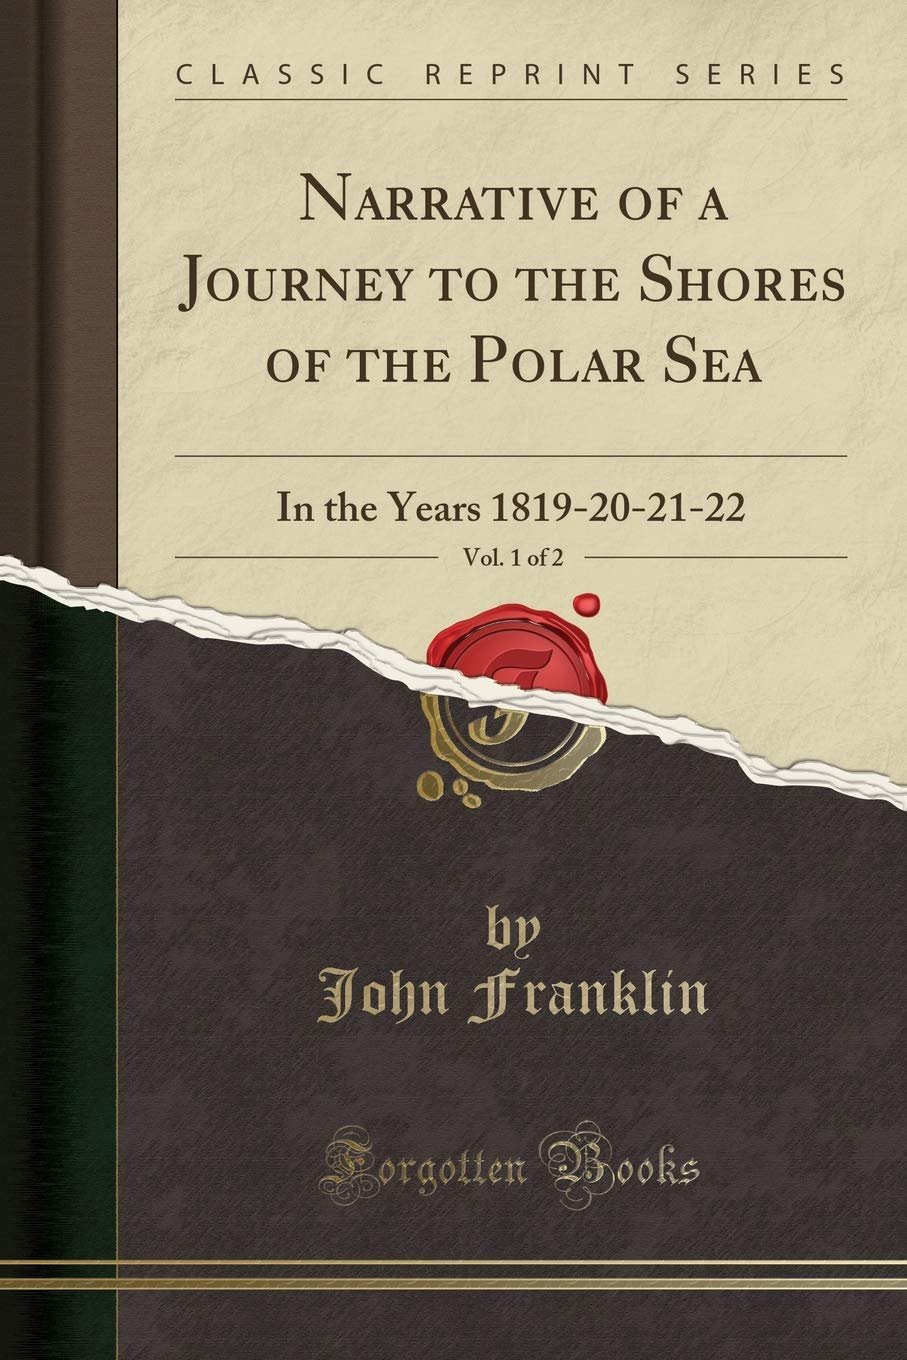 Narrative of a Journey to the Shores of the Polar Sea, Vol. 1 of 2: In the Years 1819-20-21-22 (Classic Reprint)